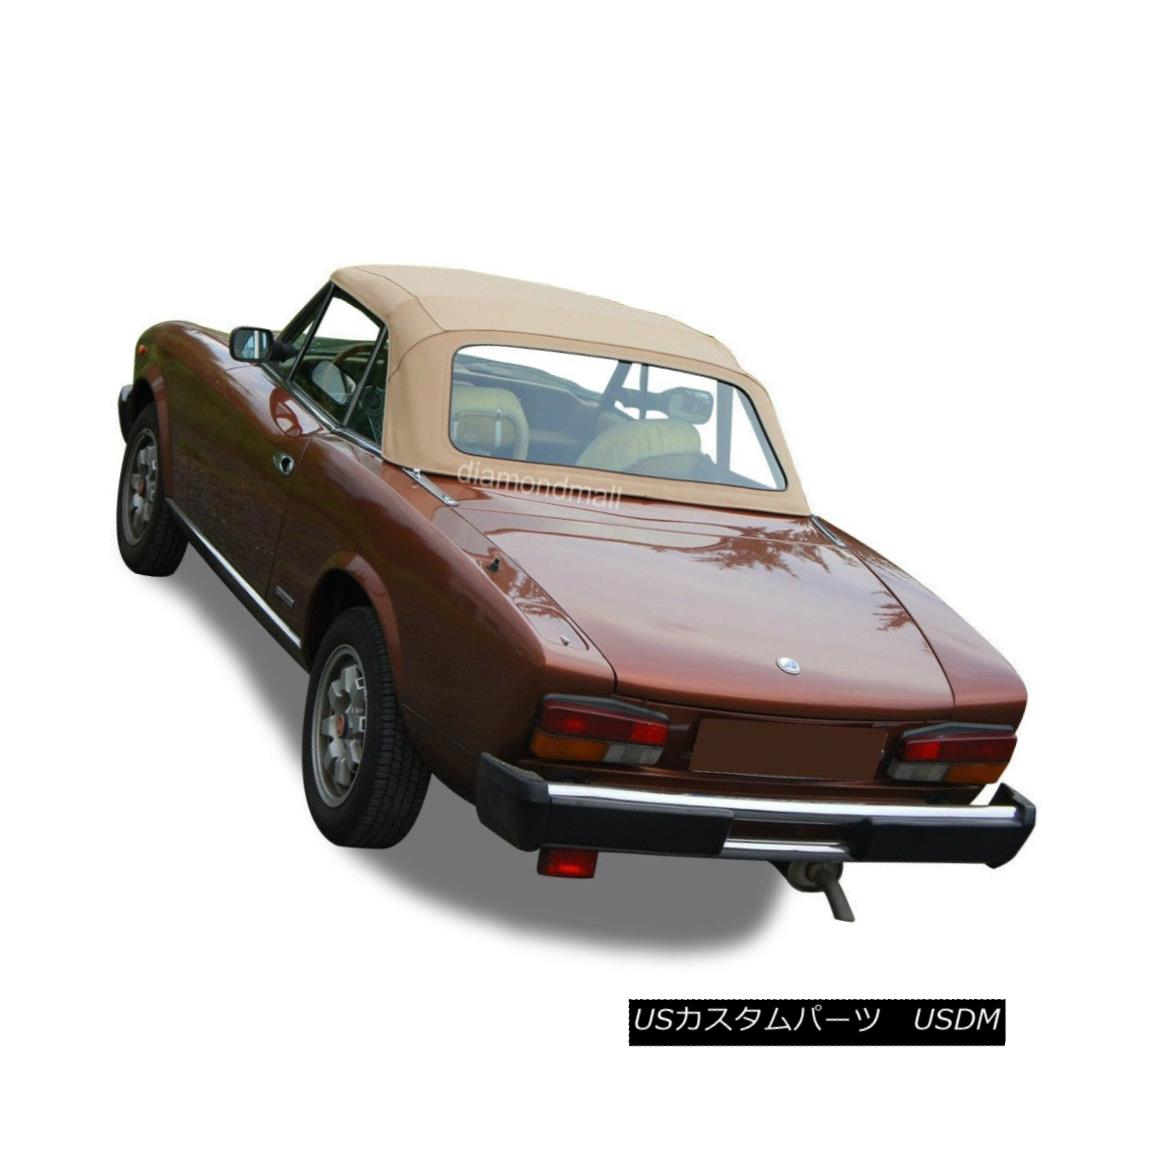 幌・ソフトトップ Fiat 124 Spider, 2000 CS2 1979-1982 Convertible Soft Top TAN Stayfast Cloth Fiat 124 Spider、2000 CS2 1979-1982コンバーチブルソフトトップTAN